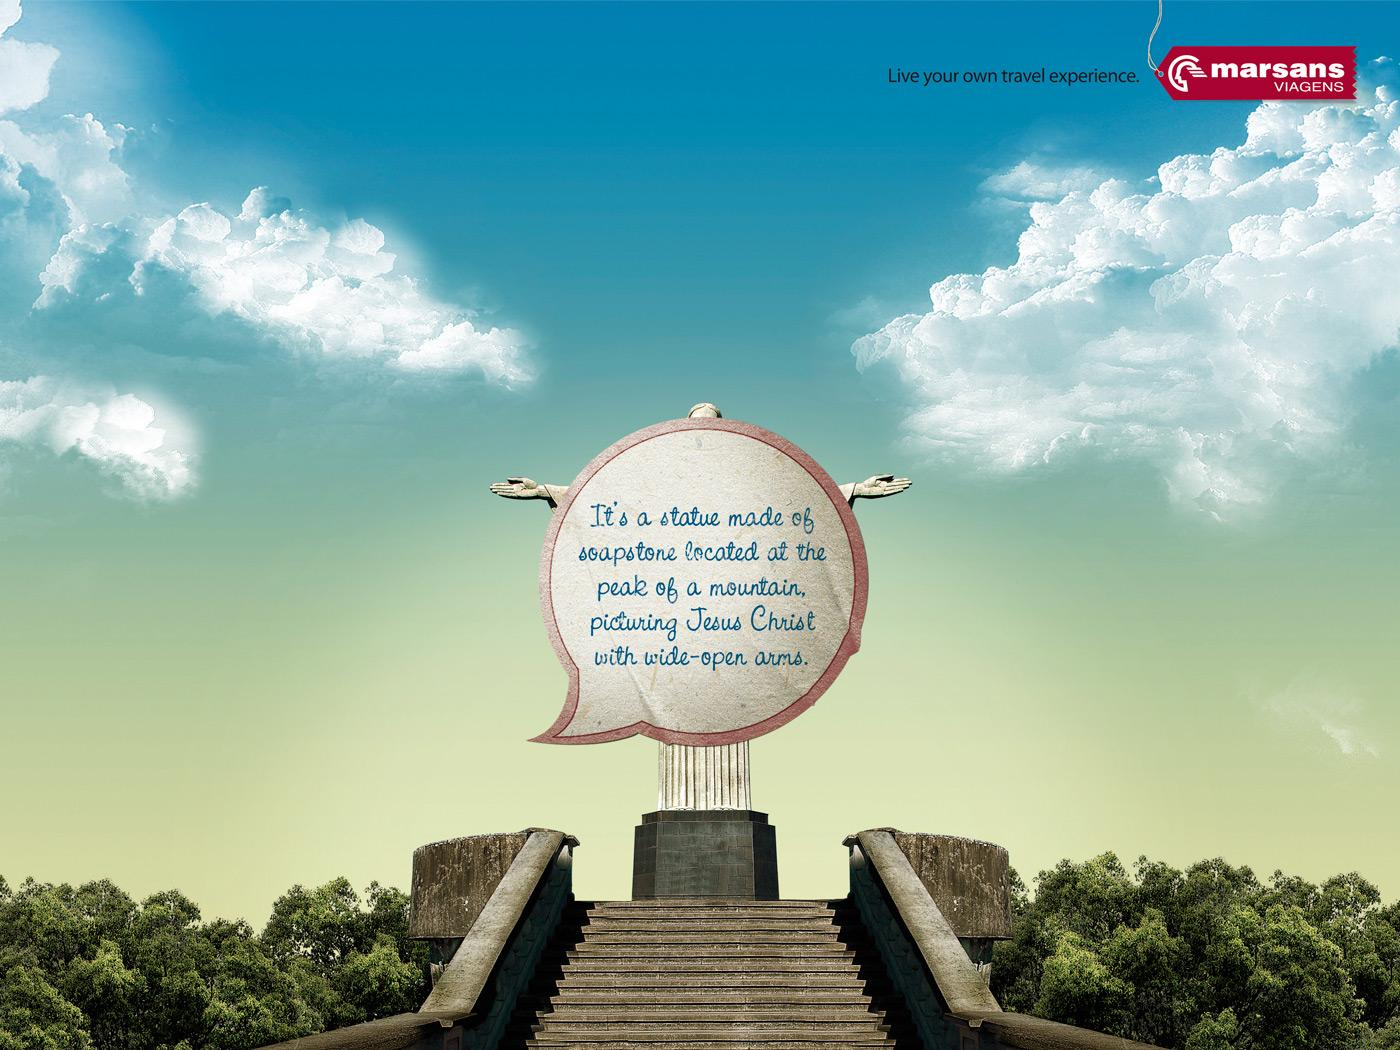 Marsans Viagens Print Ad -  Live your own travel experience, Christ